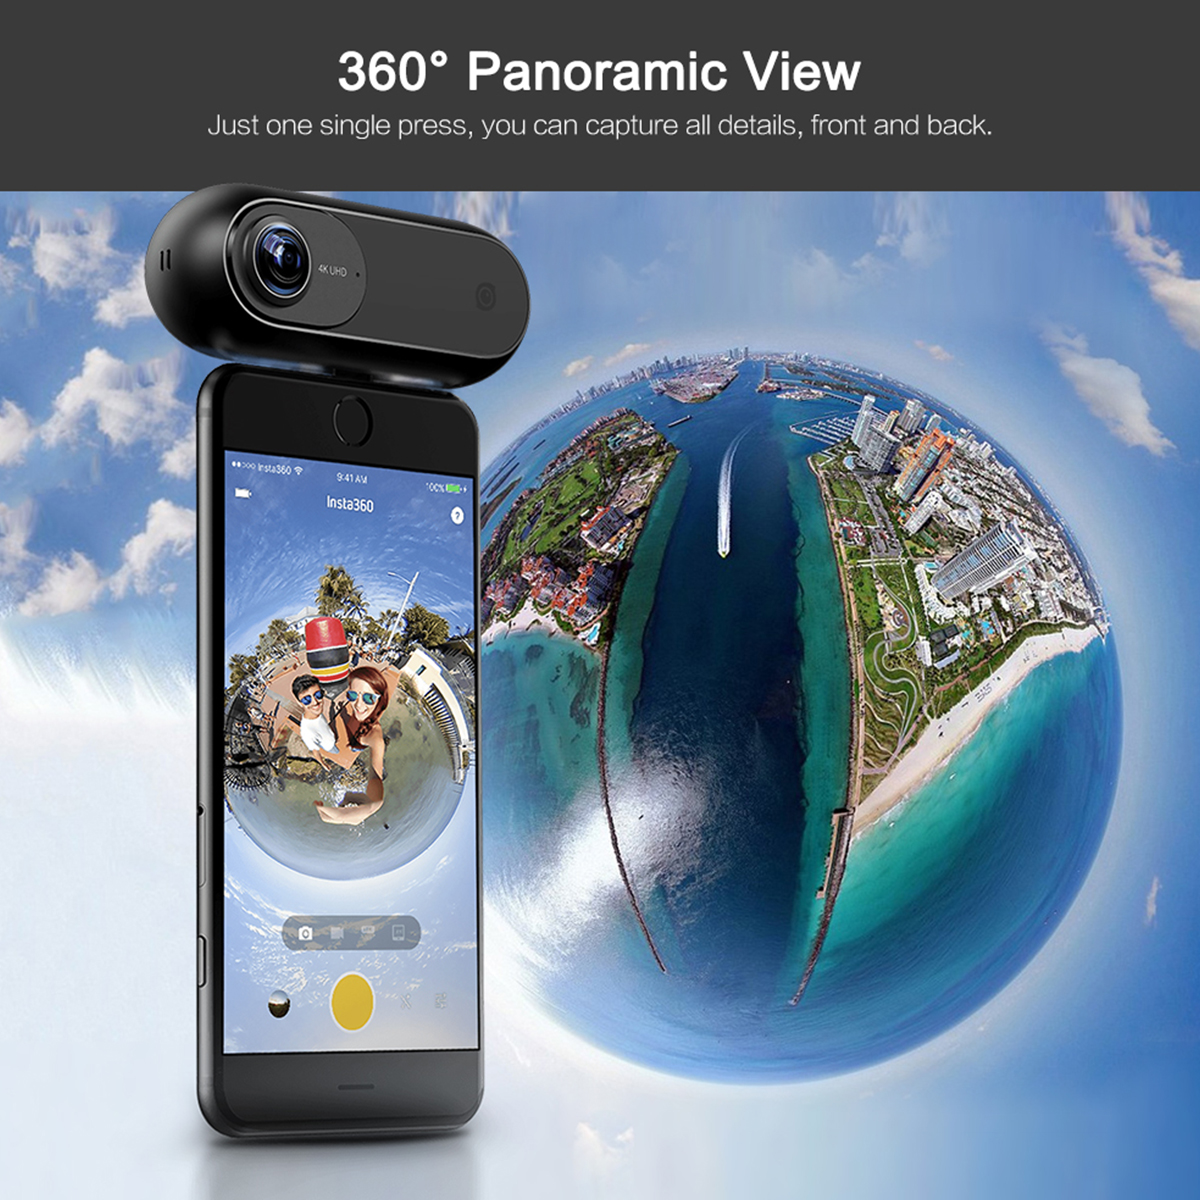 2018 Insta360 ONE 4K 360 Panoramic Camera VR Video Sport Action Camera 24MP Bullet Time 6-Axis Gyroscope Webcast for iPhone Cam insta360 air 3k hd 360 camera dual lens panoramic camera compact mini vr camera for samsung oppo huawei lg andriod smartphone